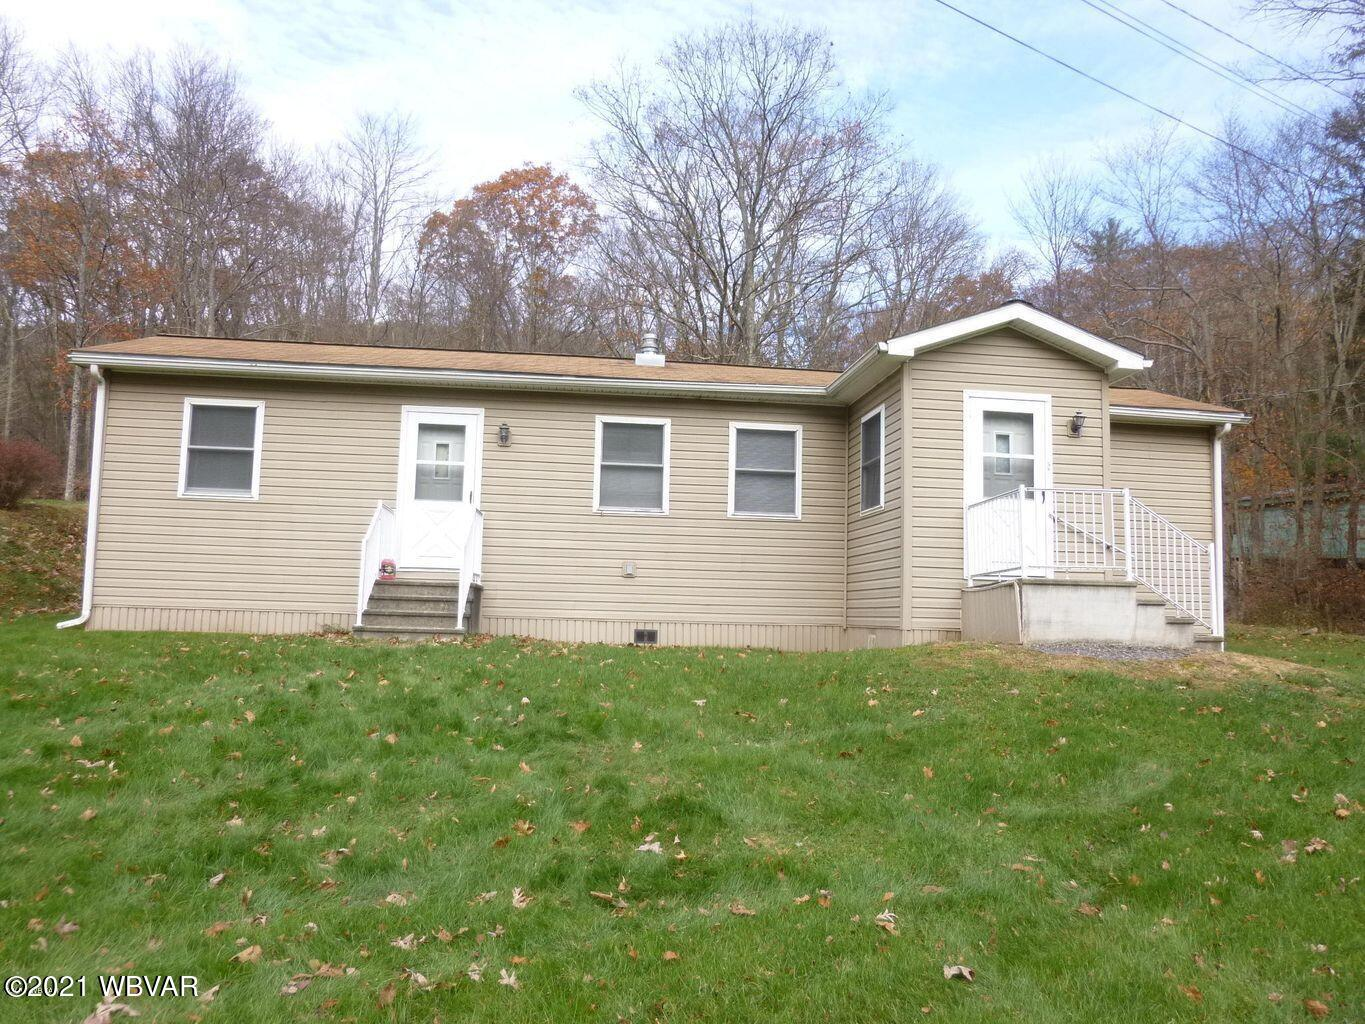 148 CHESTNUT STREET, Cross Fork, PA 17729, 2 Bedrooms Bedrooms, ,Cabin/vacation home,For sale,CHESTNUT,WB-91913